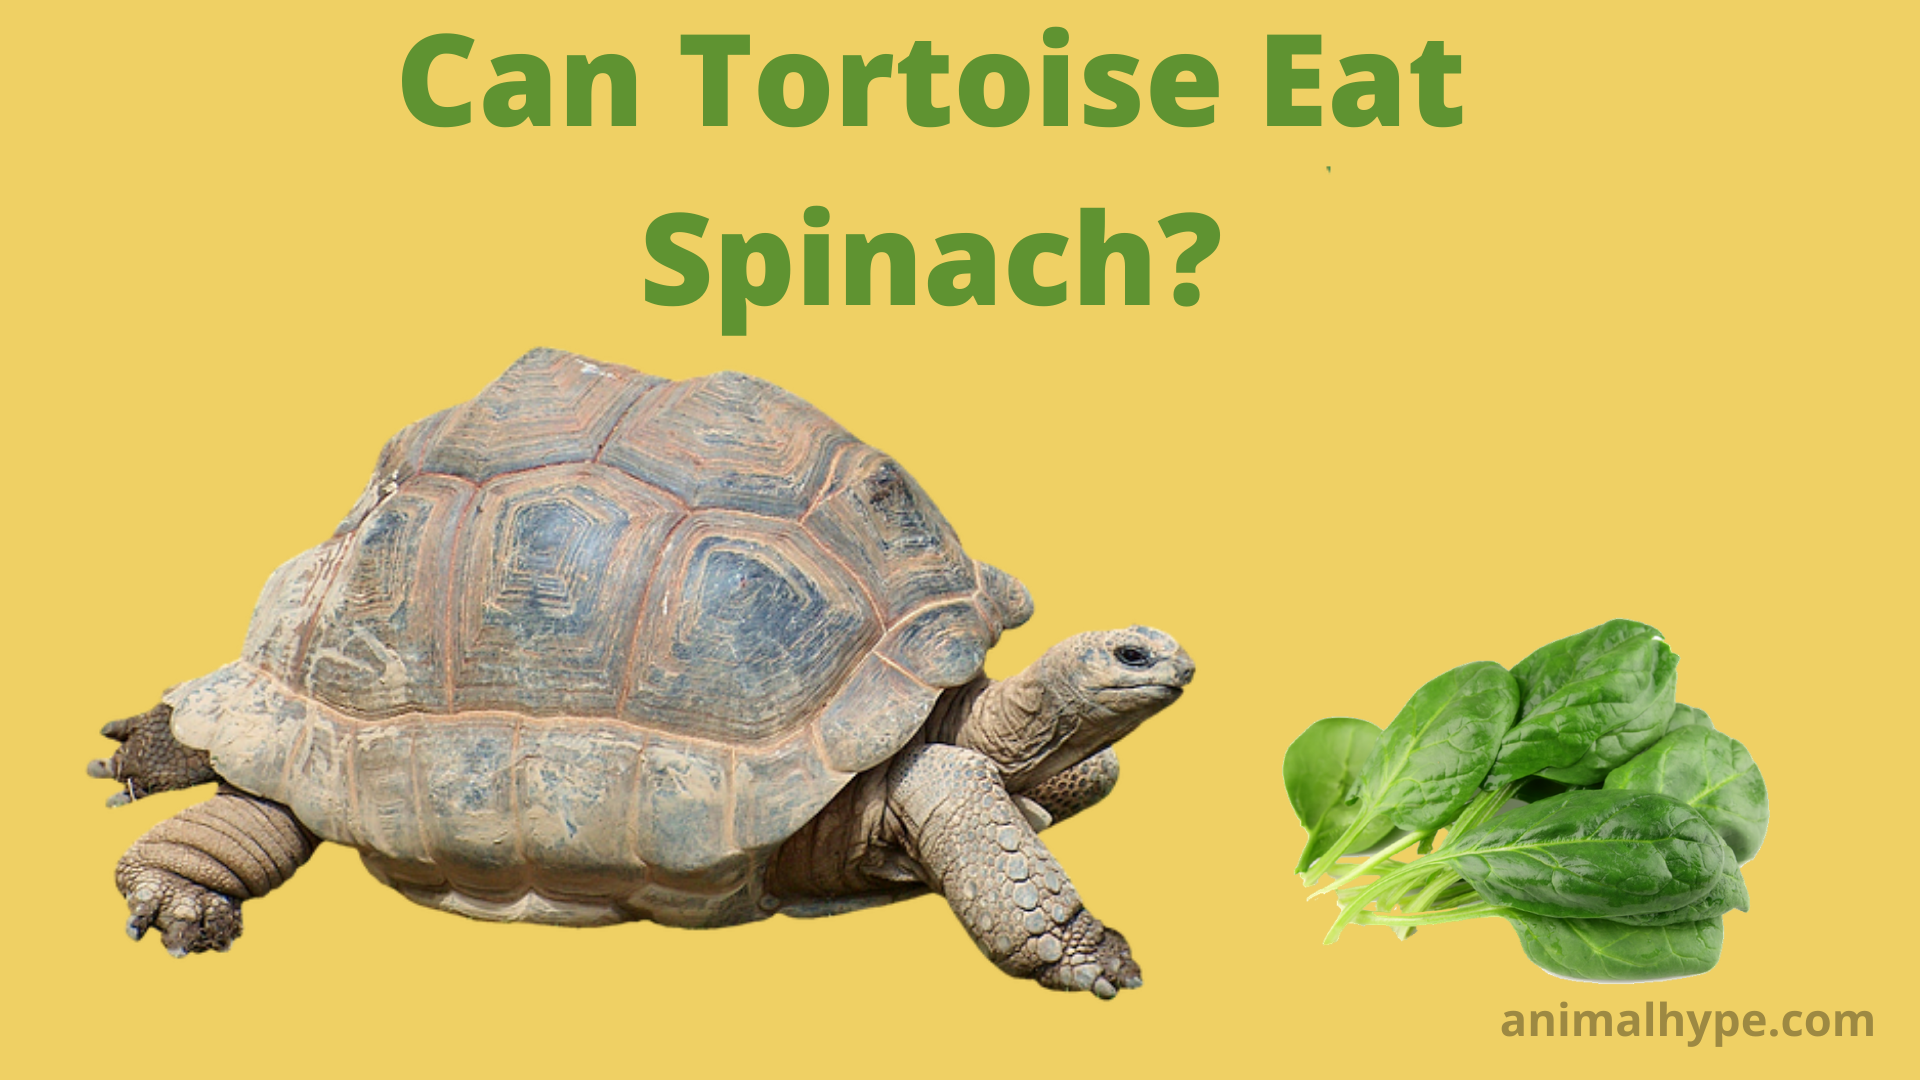 Can Tortoise Eat Spinach